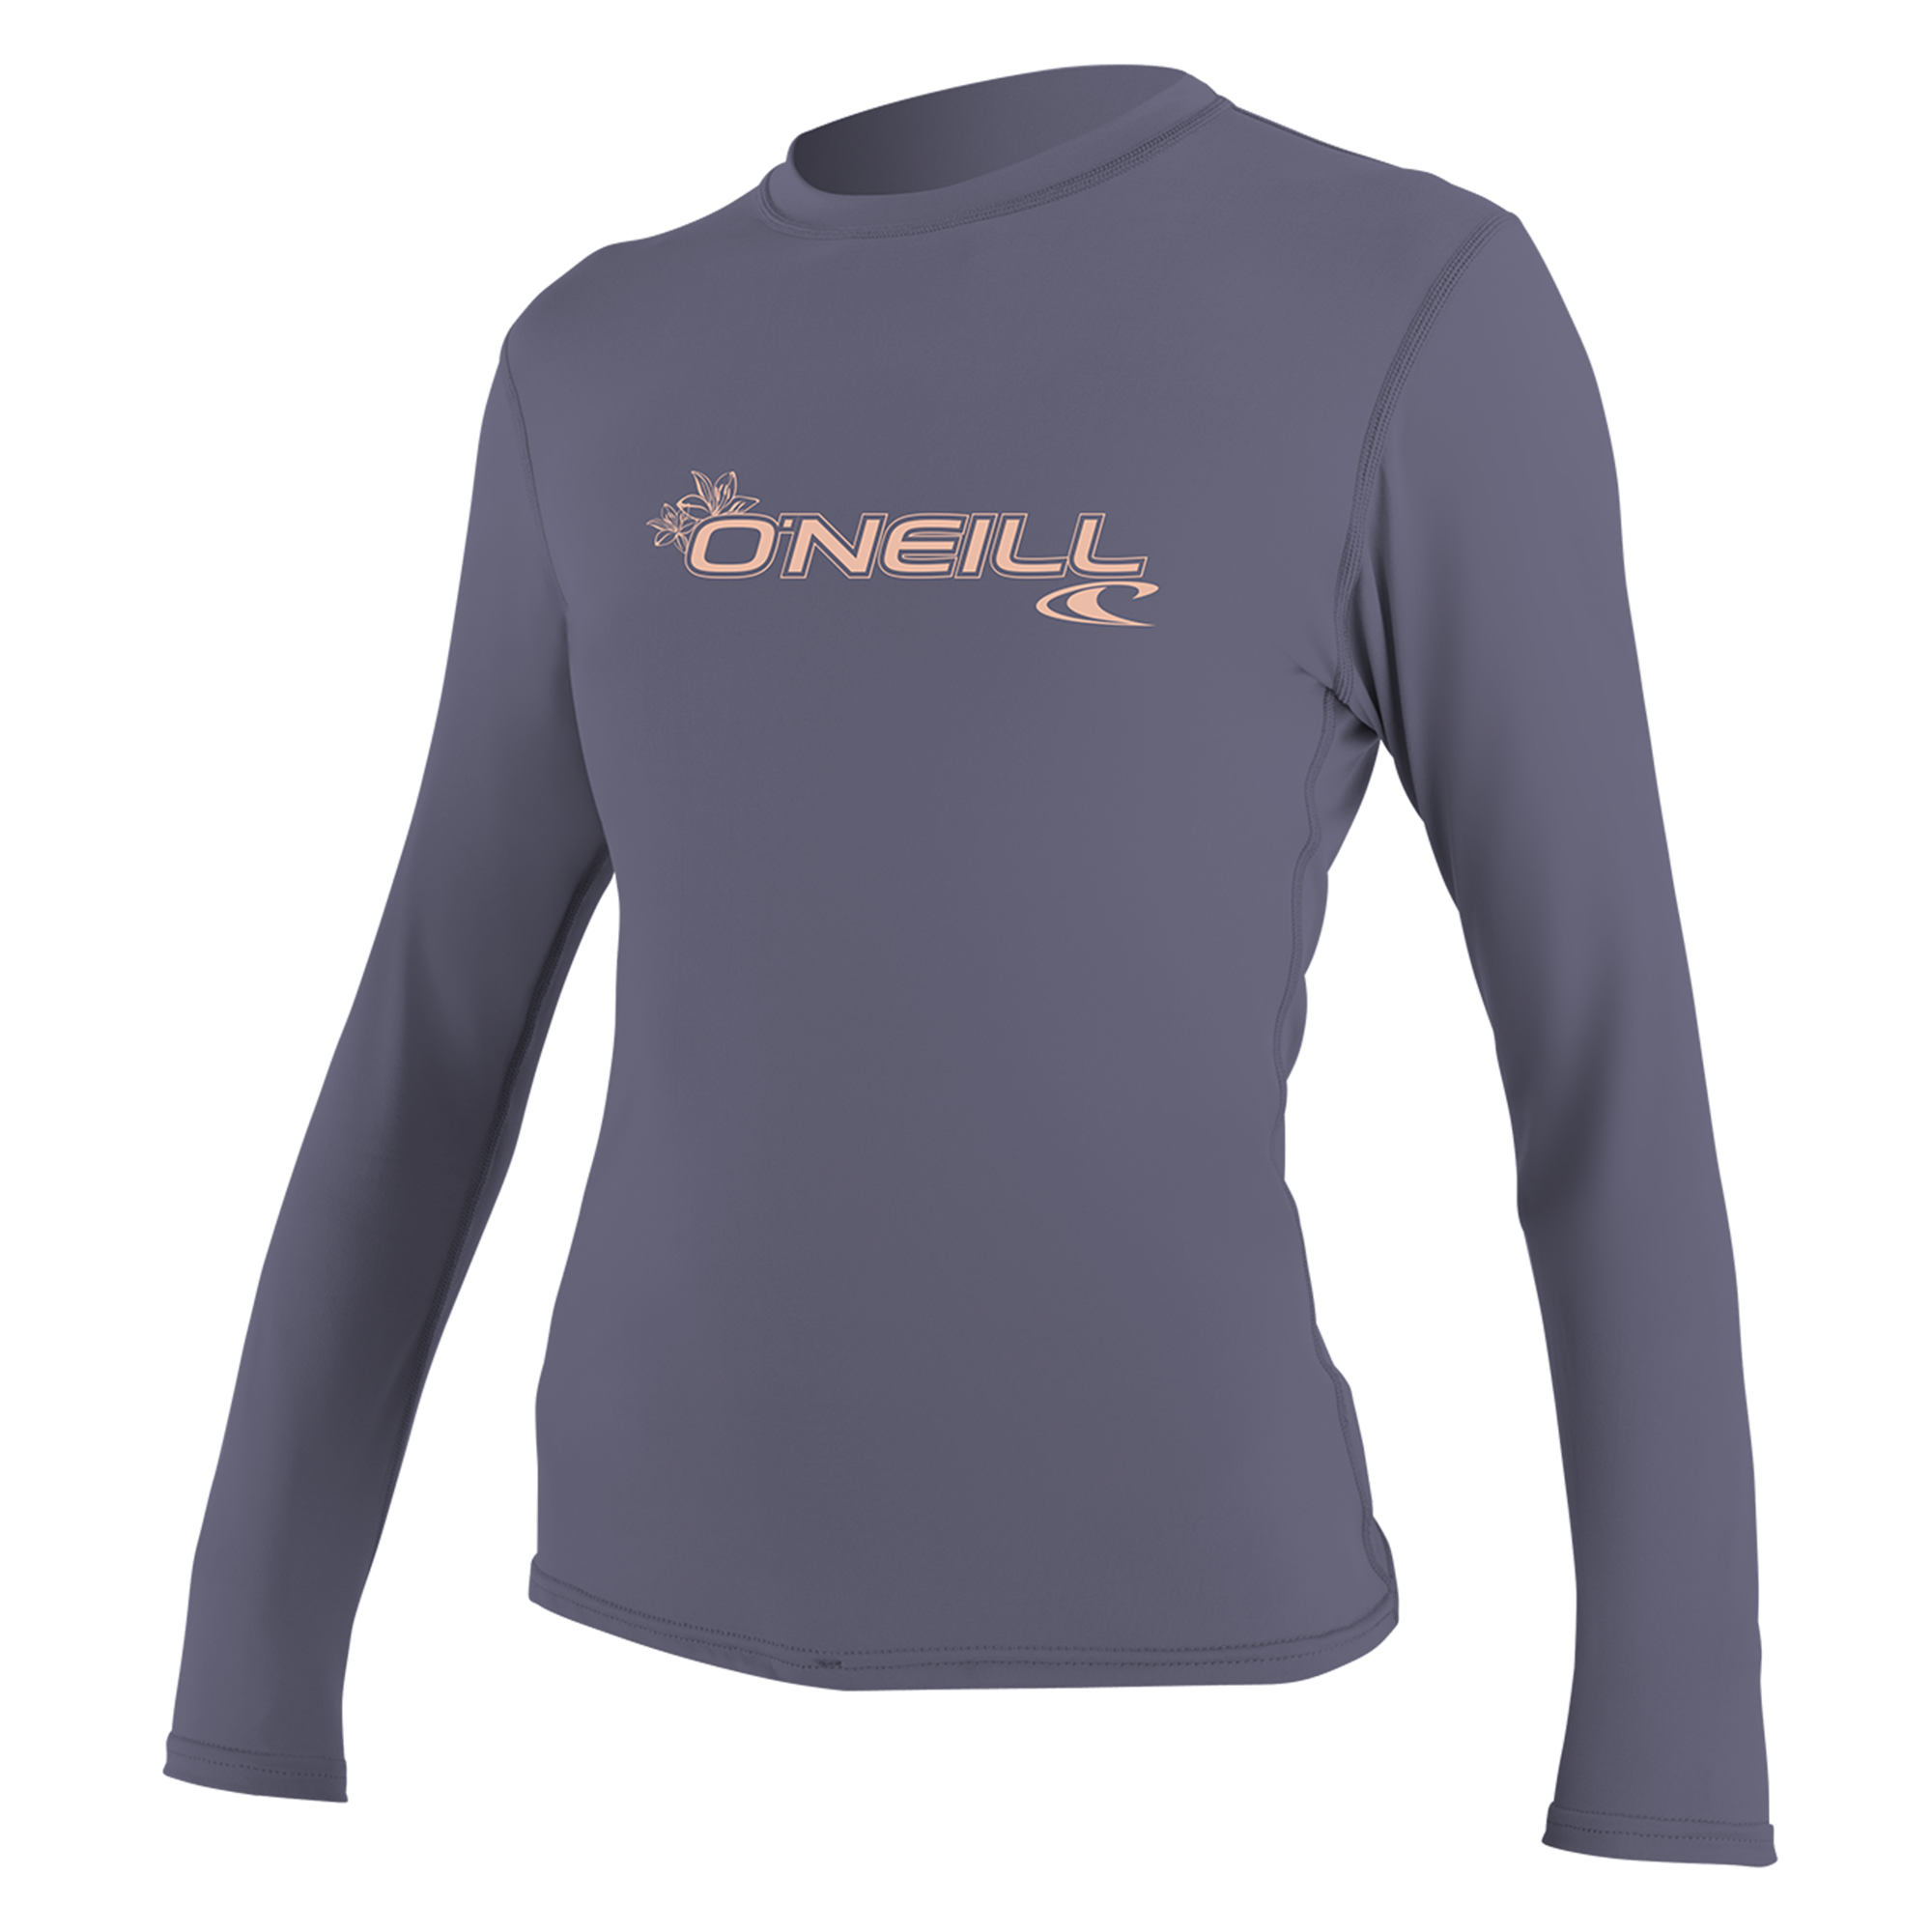 O'NEILL WOMEN'S BASIC 50+ LONG SLEEVE SUN SHIRT (Multiple Sizes and Colors)